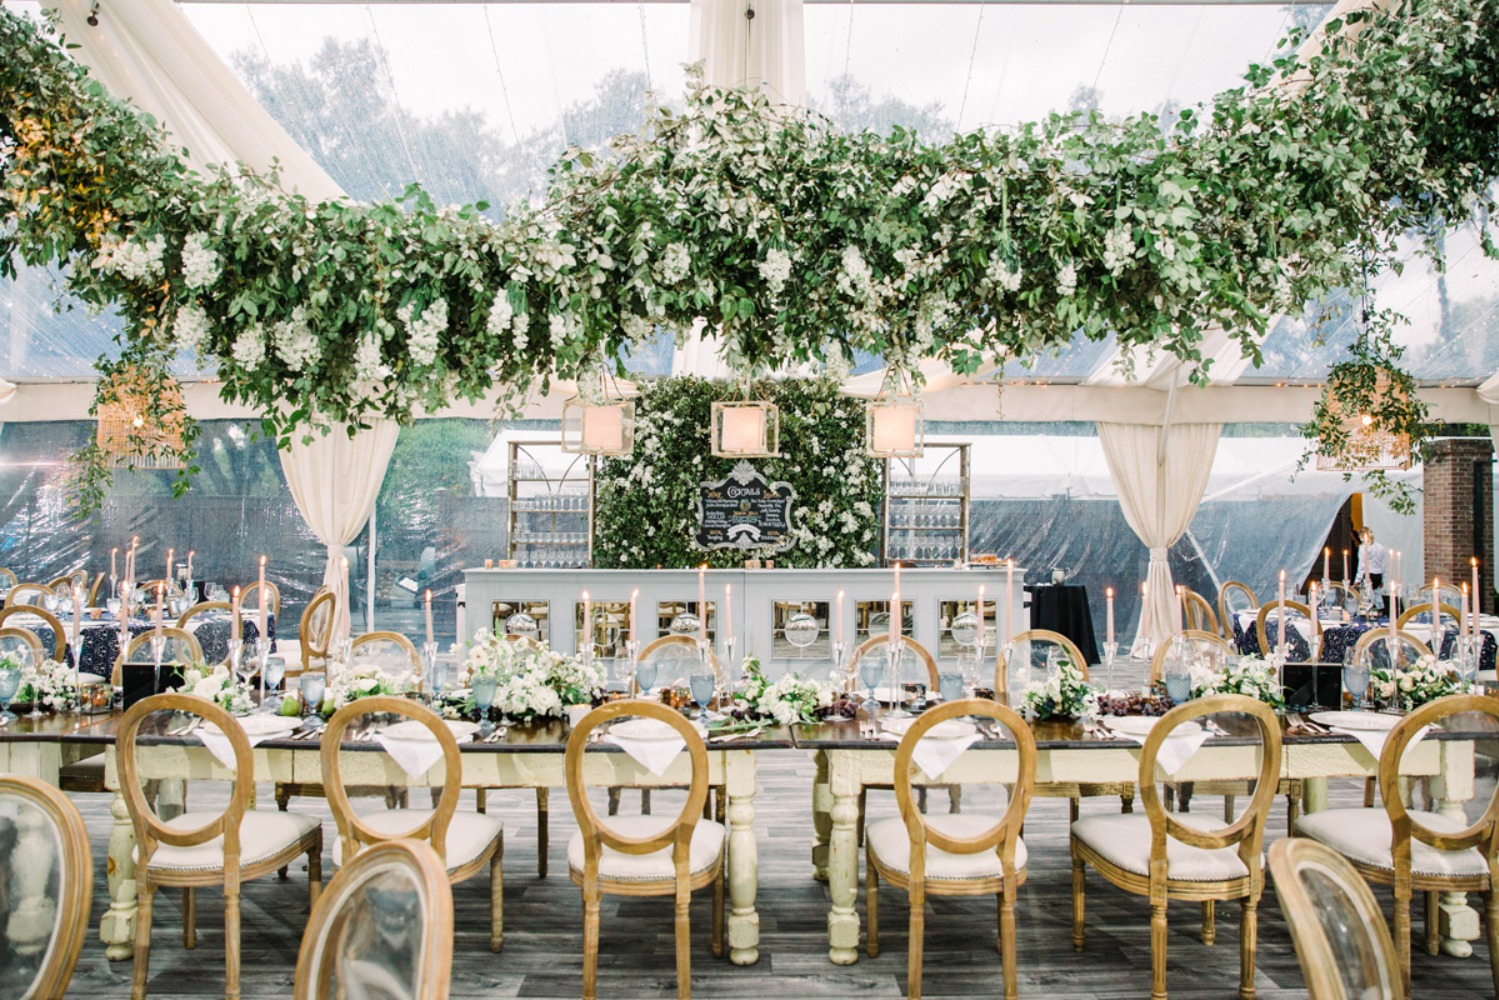 Greenery table arbor for a wedding